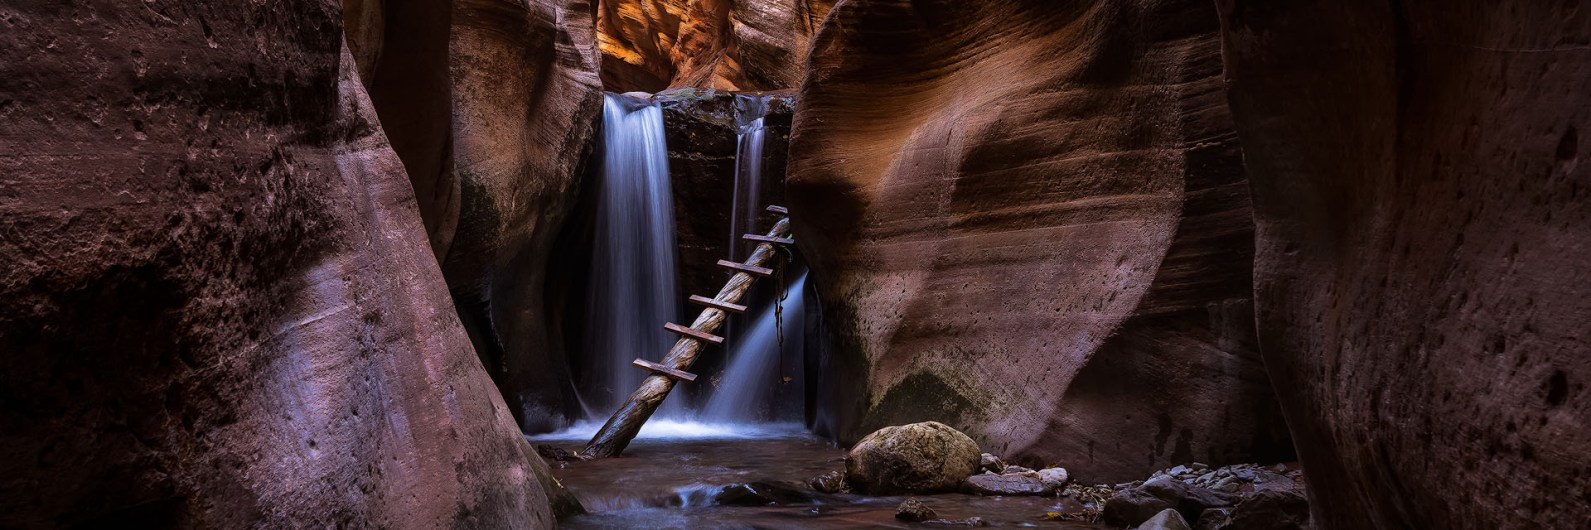 The Journey Within - Luxury Utah Panoramic Landscape Photography